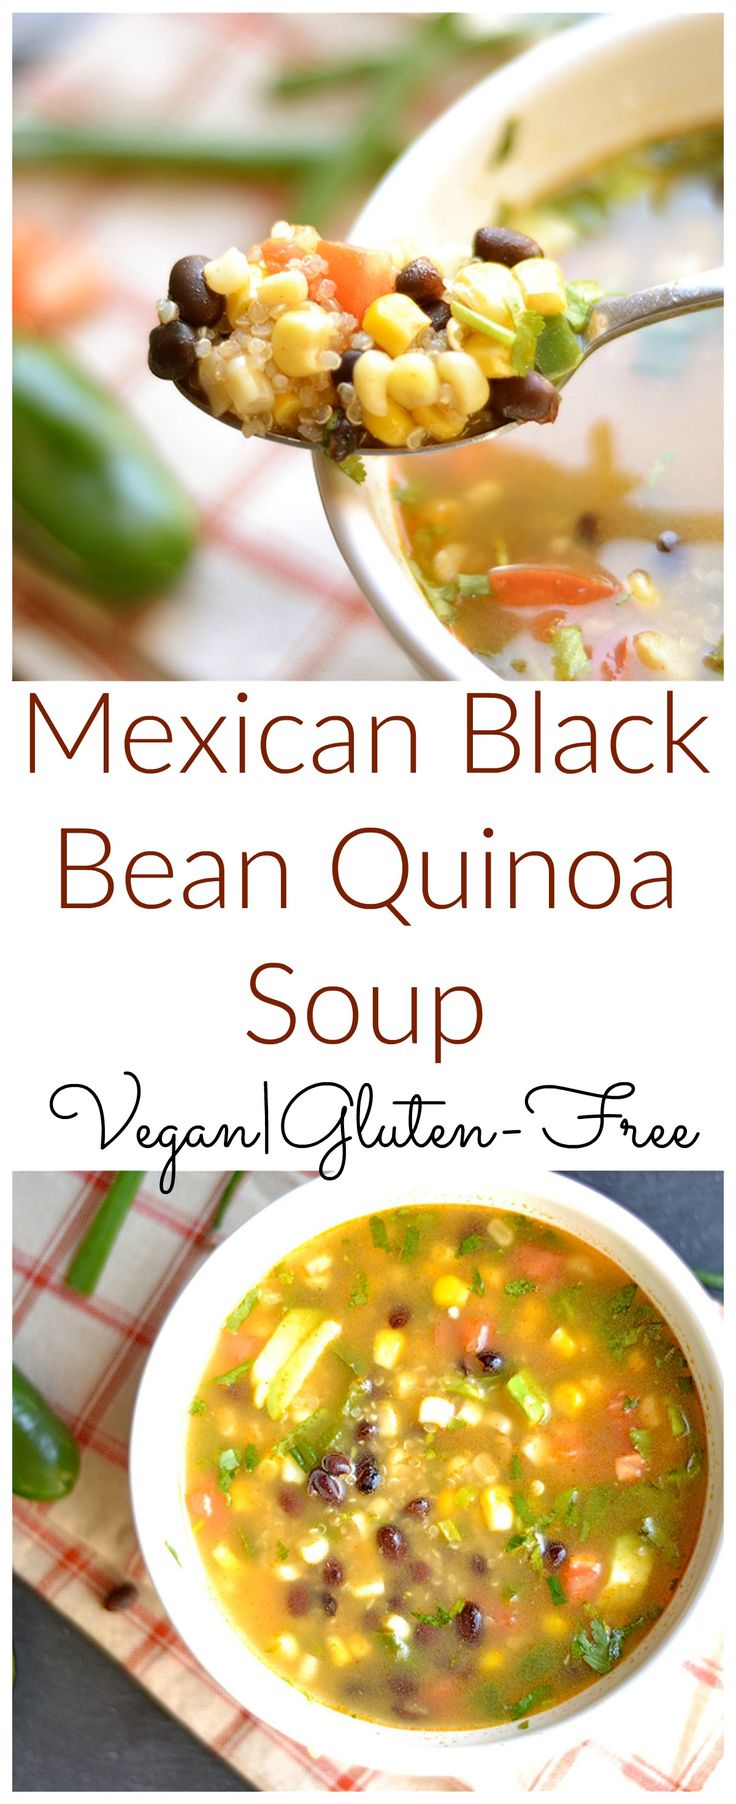 Simple, delicious, and nutritious soup! One of my favorite lunch recipes!